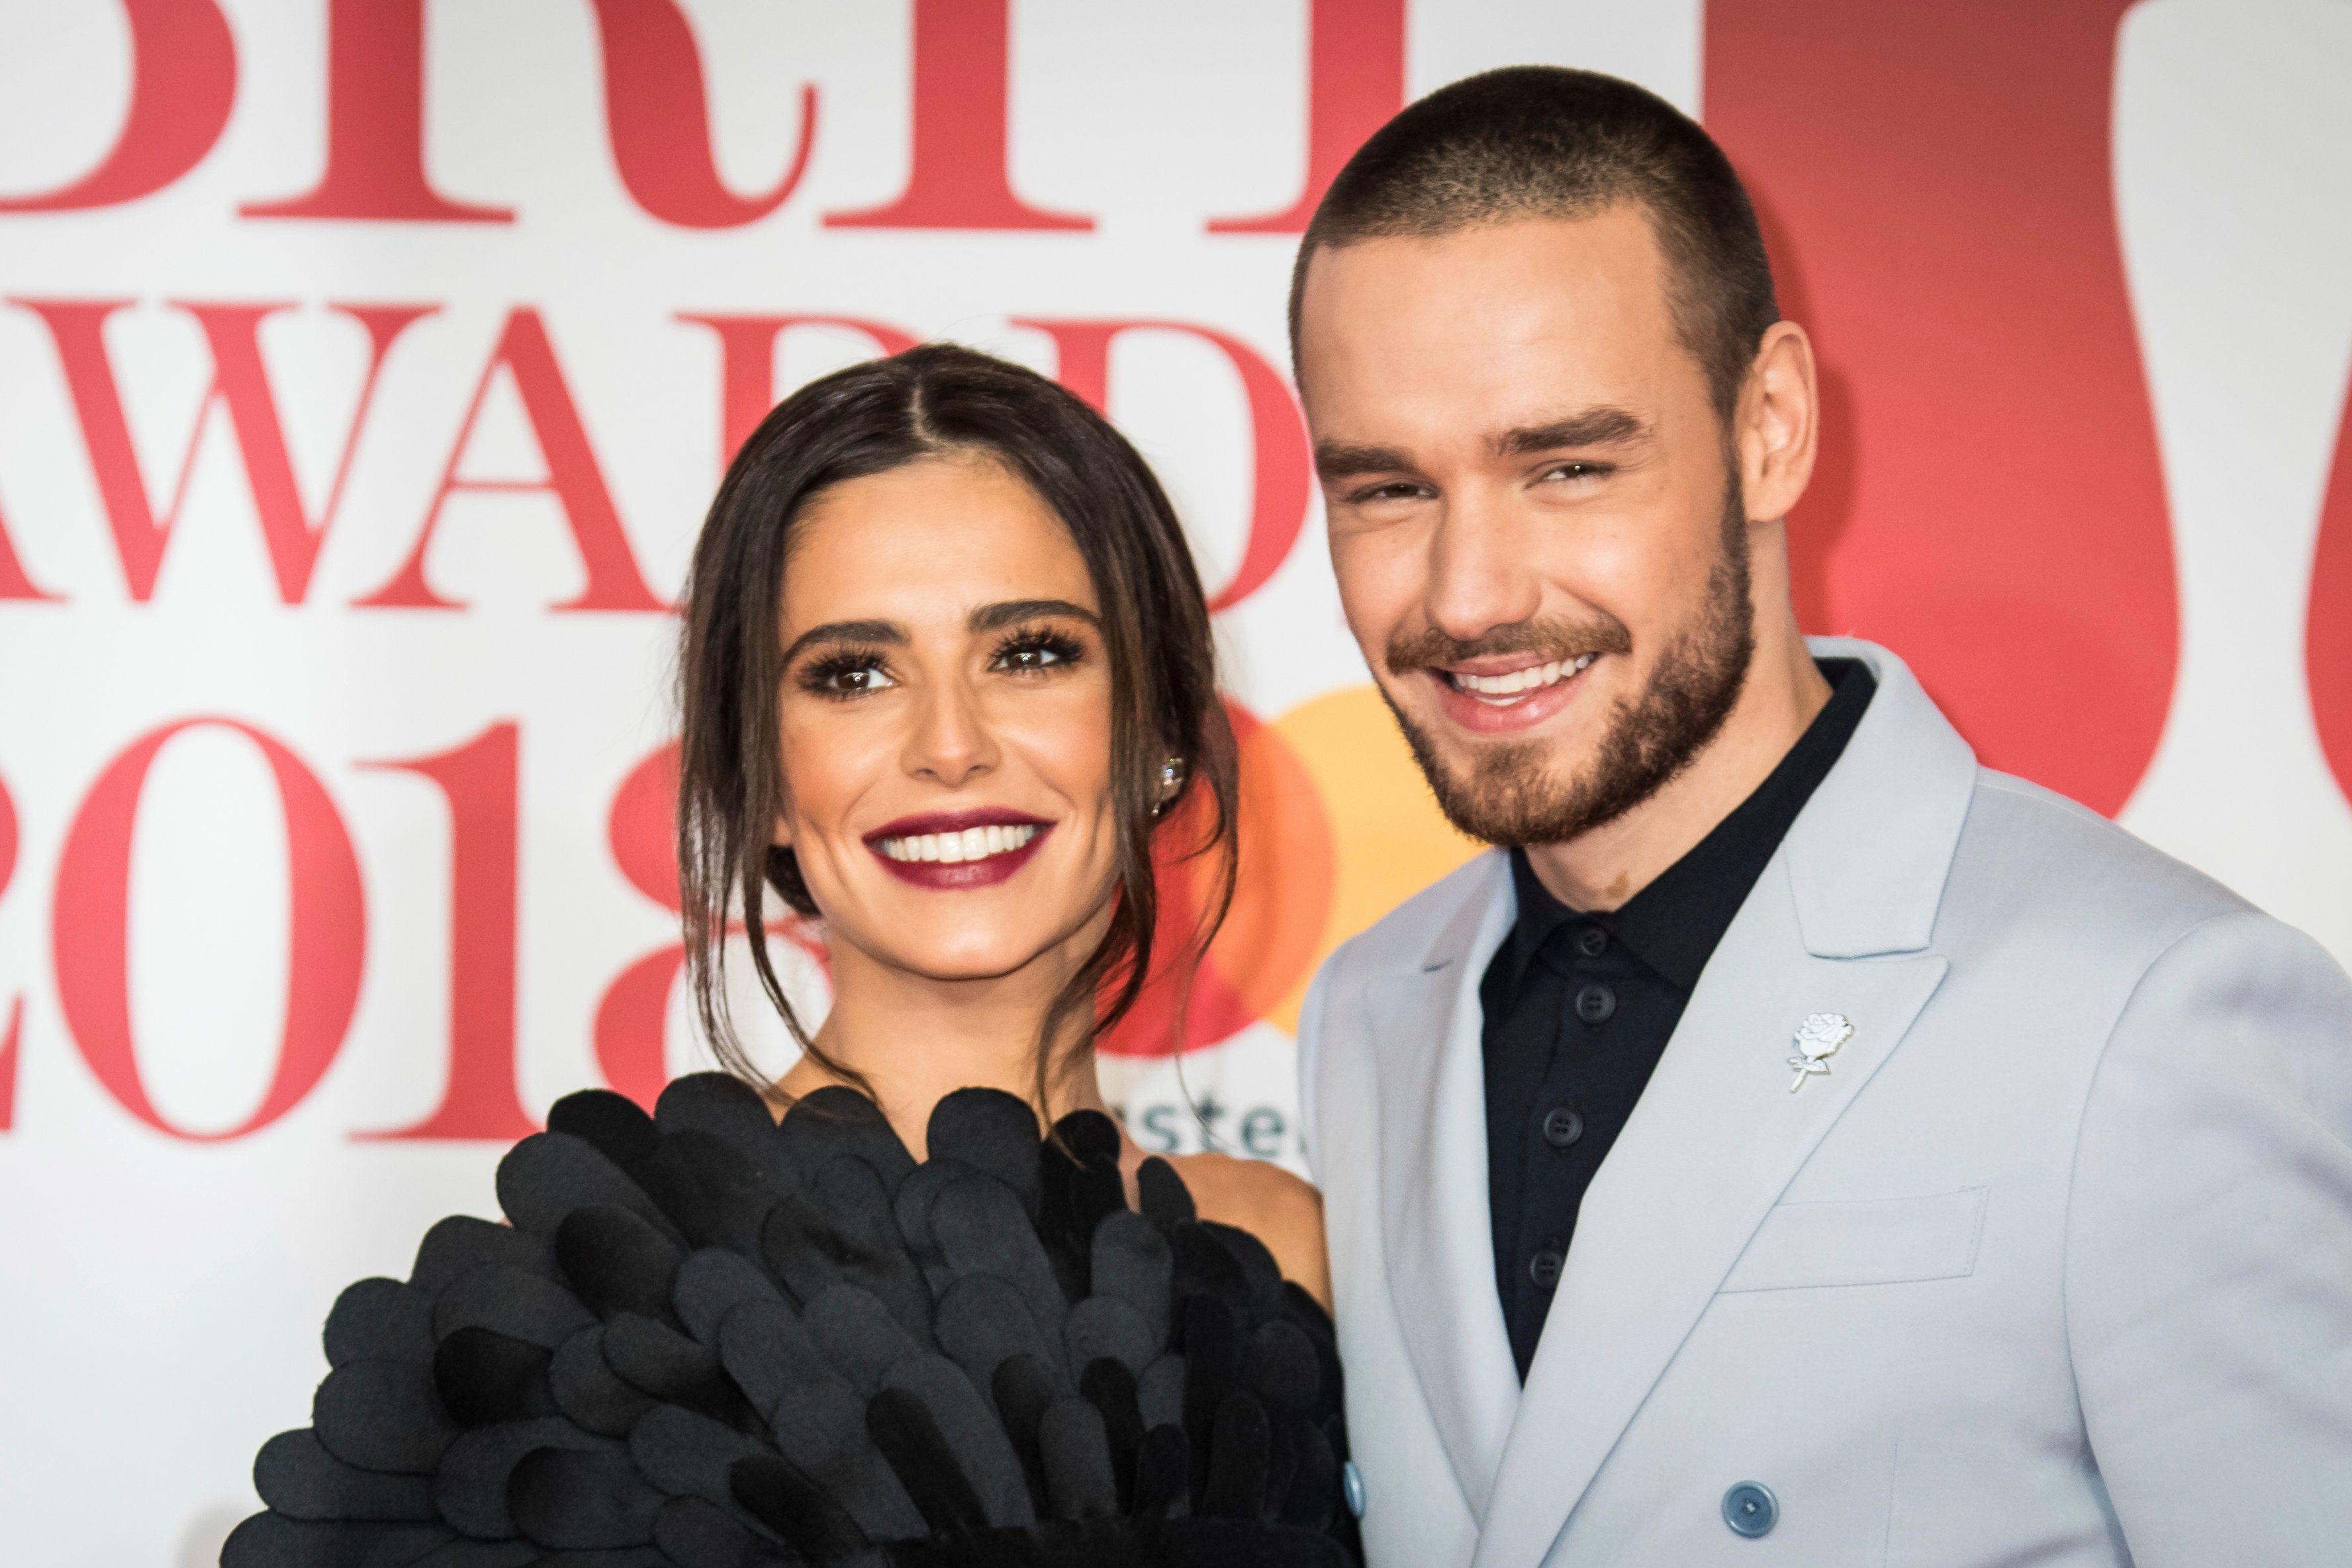 Cheryl Reveals Ex Liam Payne Spent Christmas With Her And Their Son,